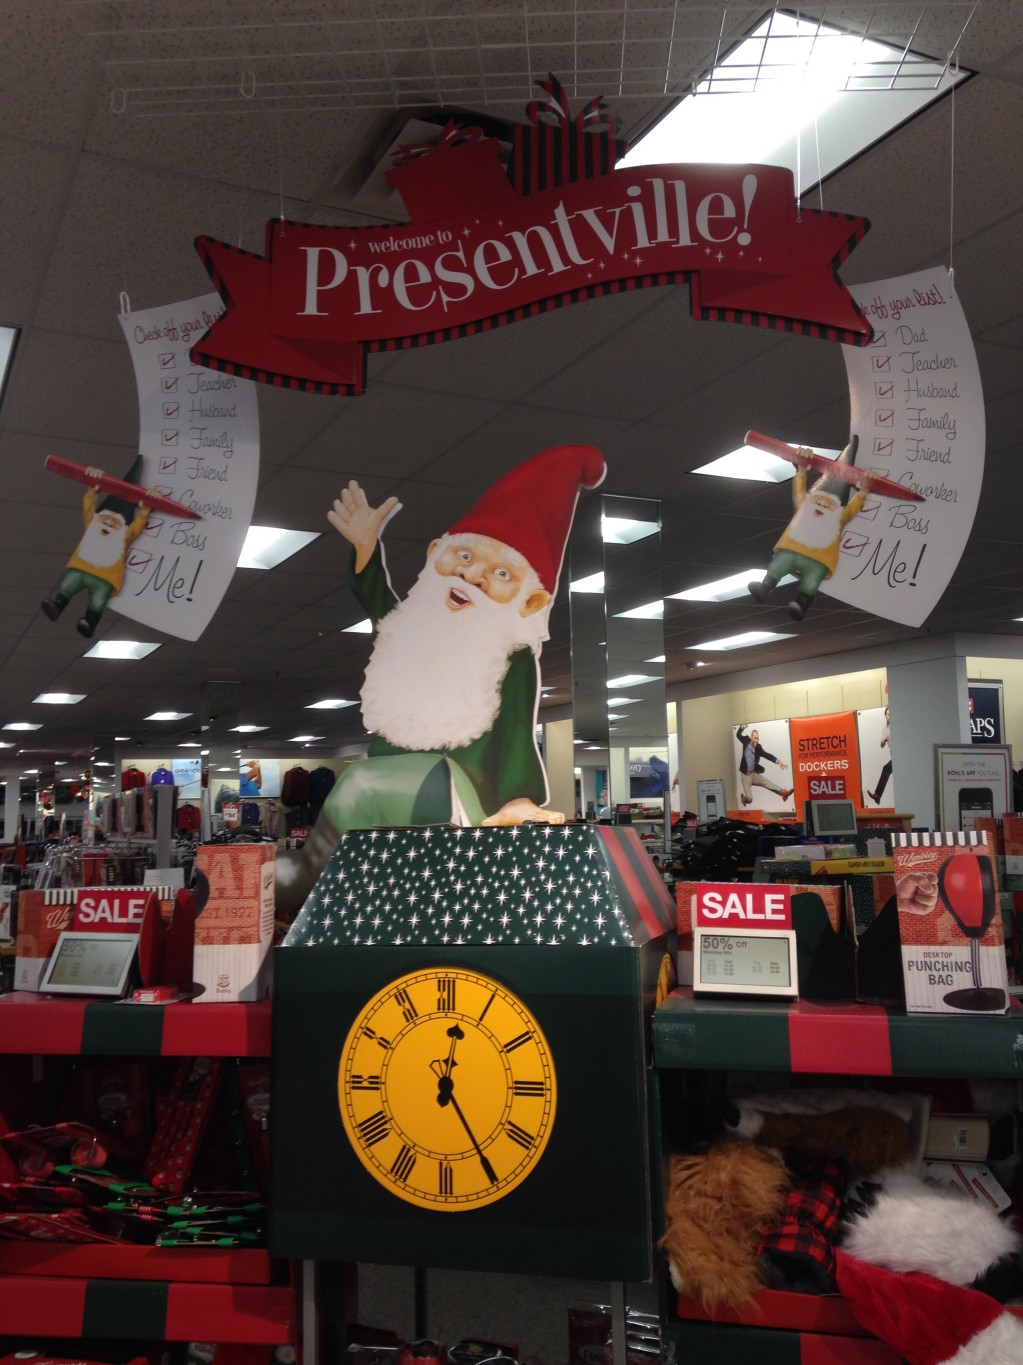 the gift department im sorry i mean presentville land of the gnomes without eyelids offered a great deal of temptation - Is Kohls Open On Christmas Day